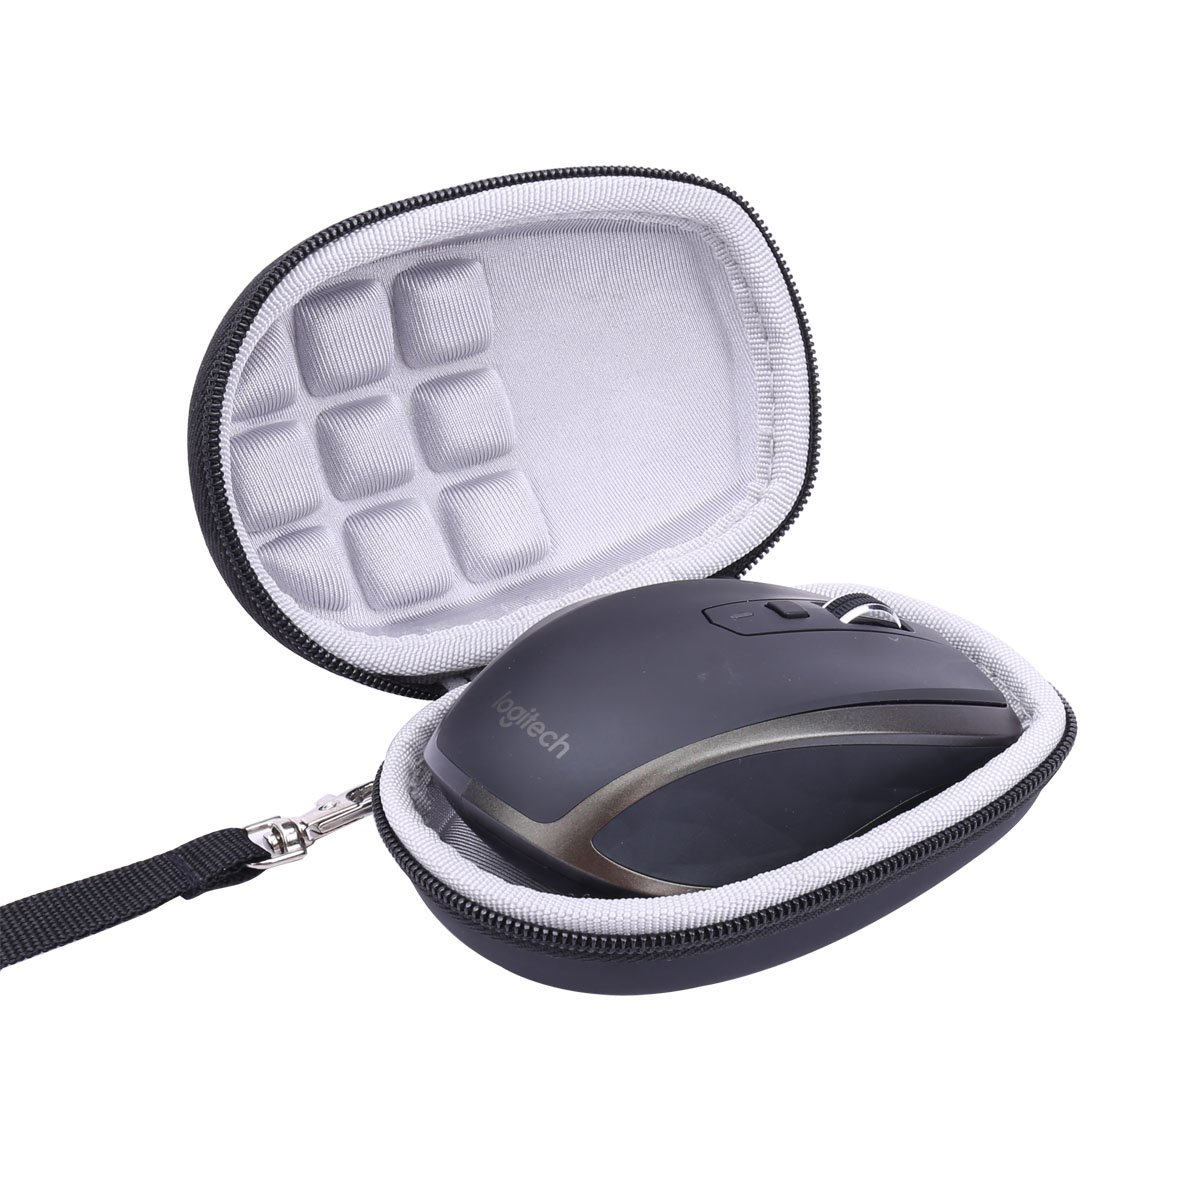 Hard Travel Case for Logitech MX Anywhere 1 2 Gen 2S Wireless Mobile Mouse by co2CREA